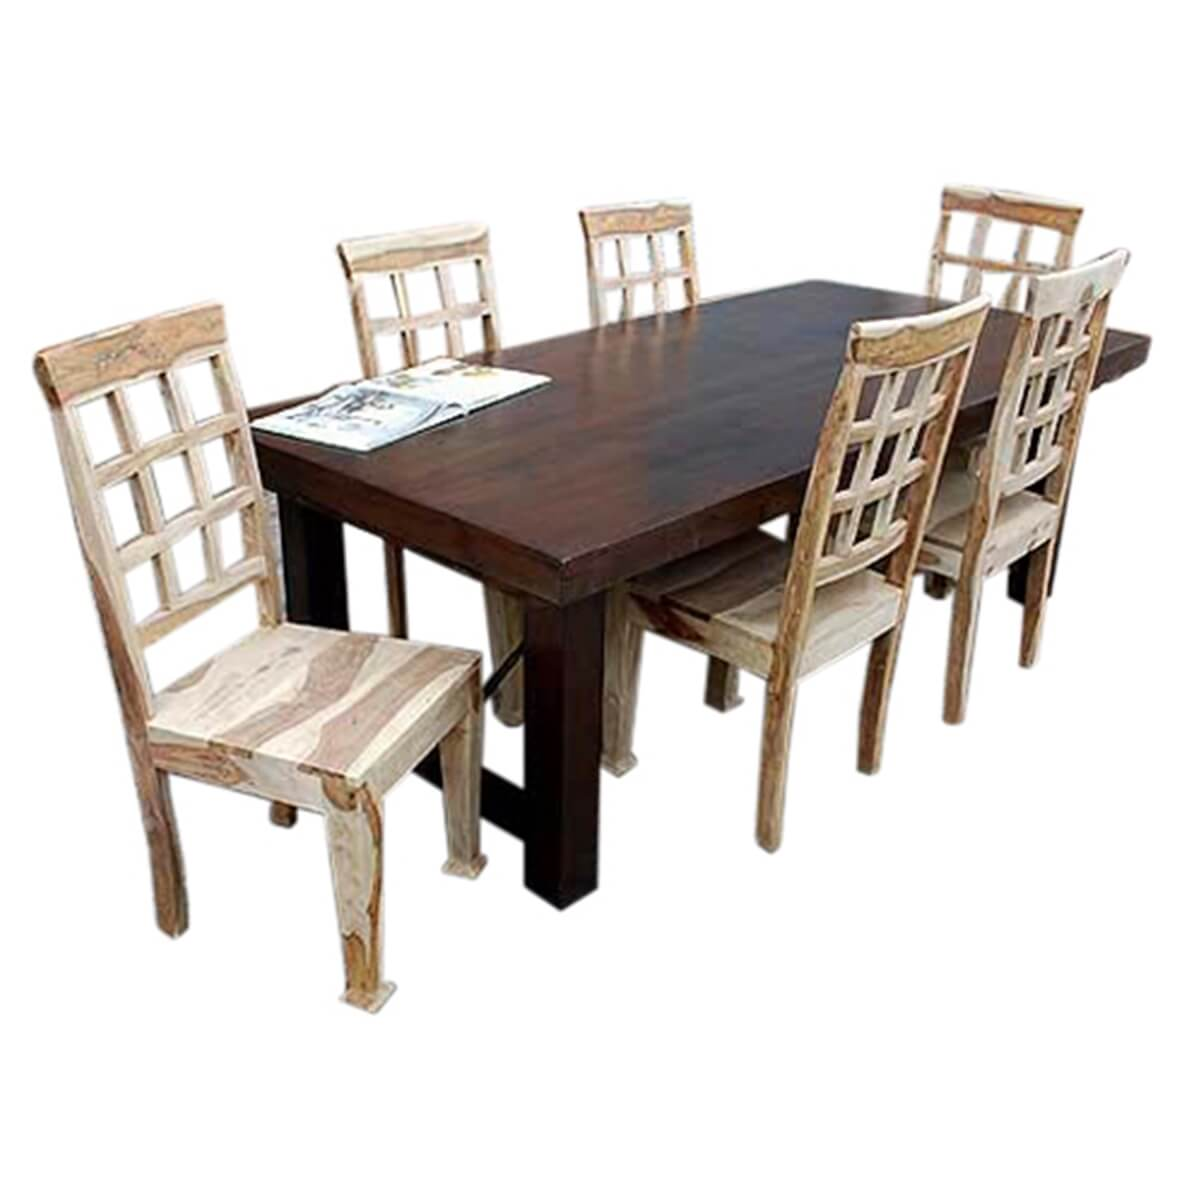 Santa Fe Solid Wood Rustic Dining Table And Chair Set For